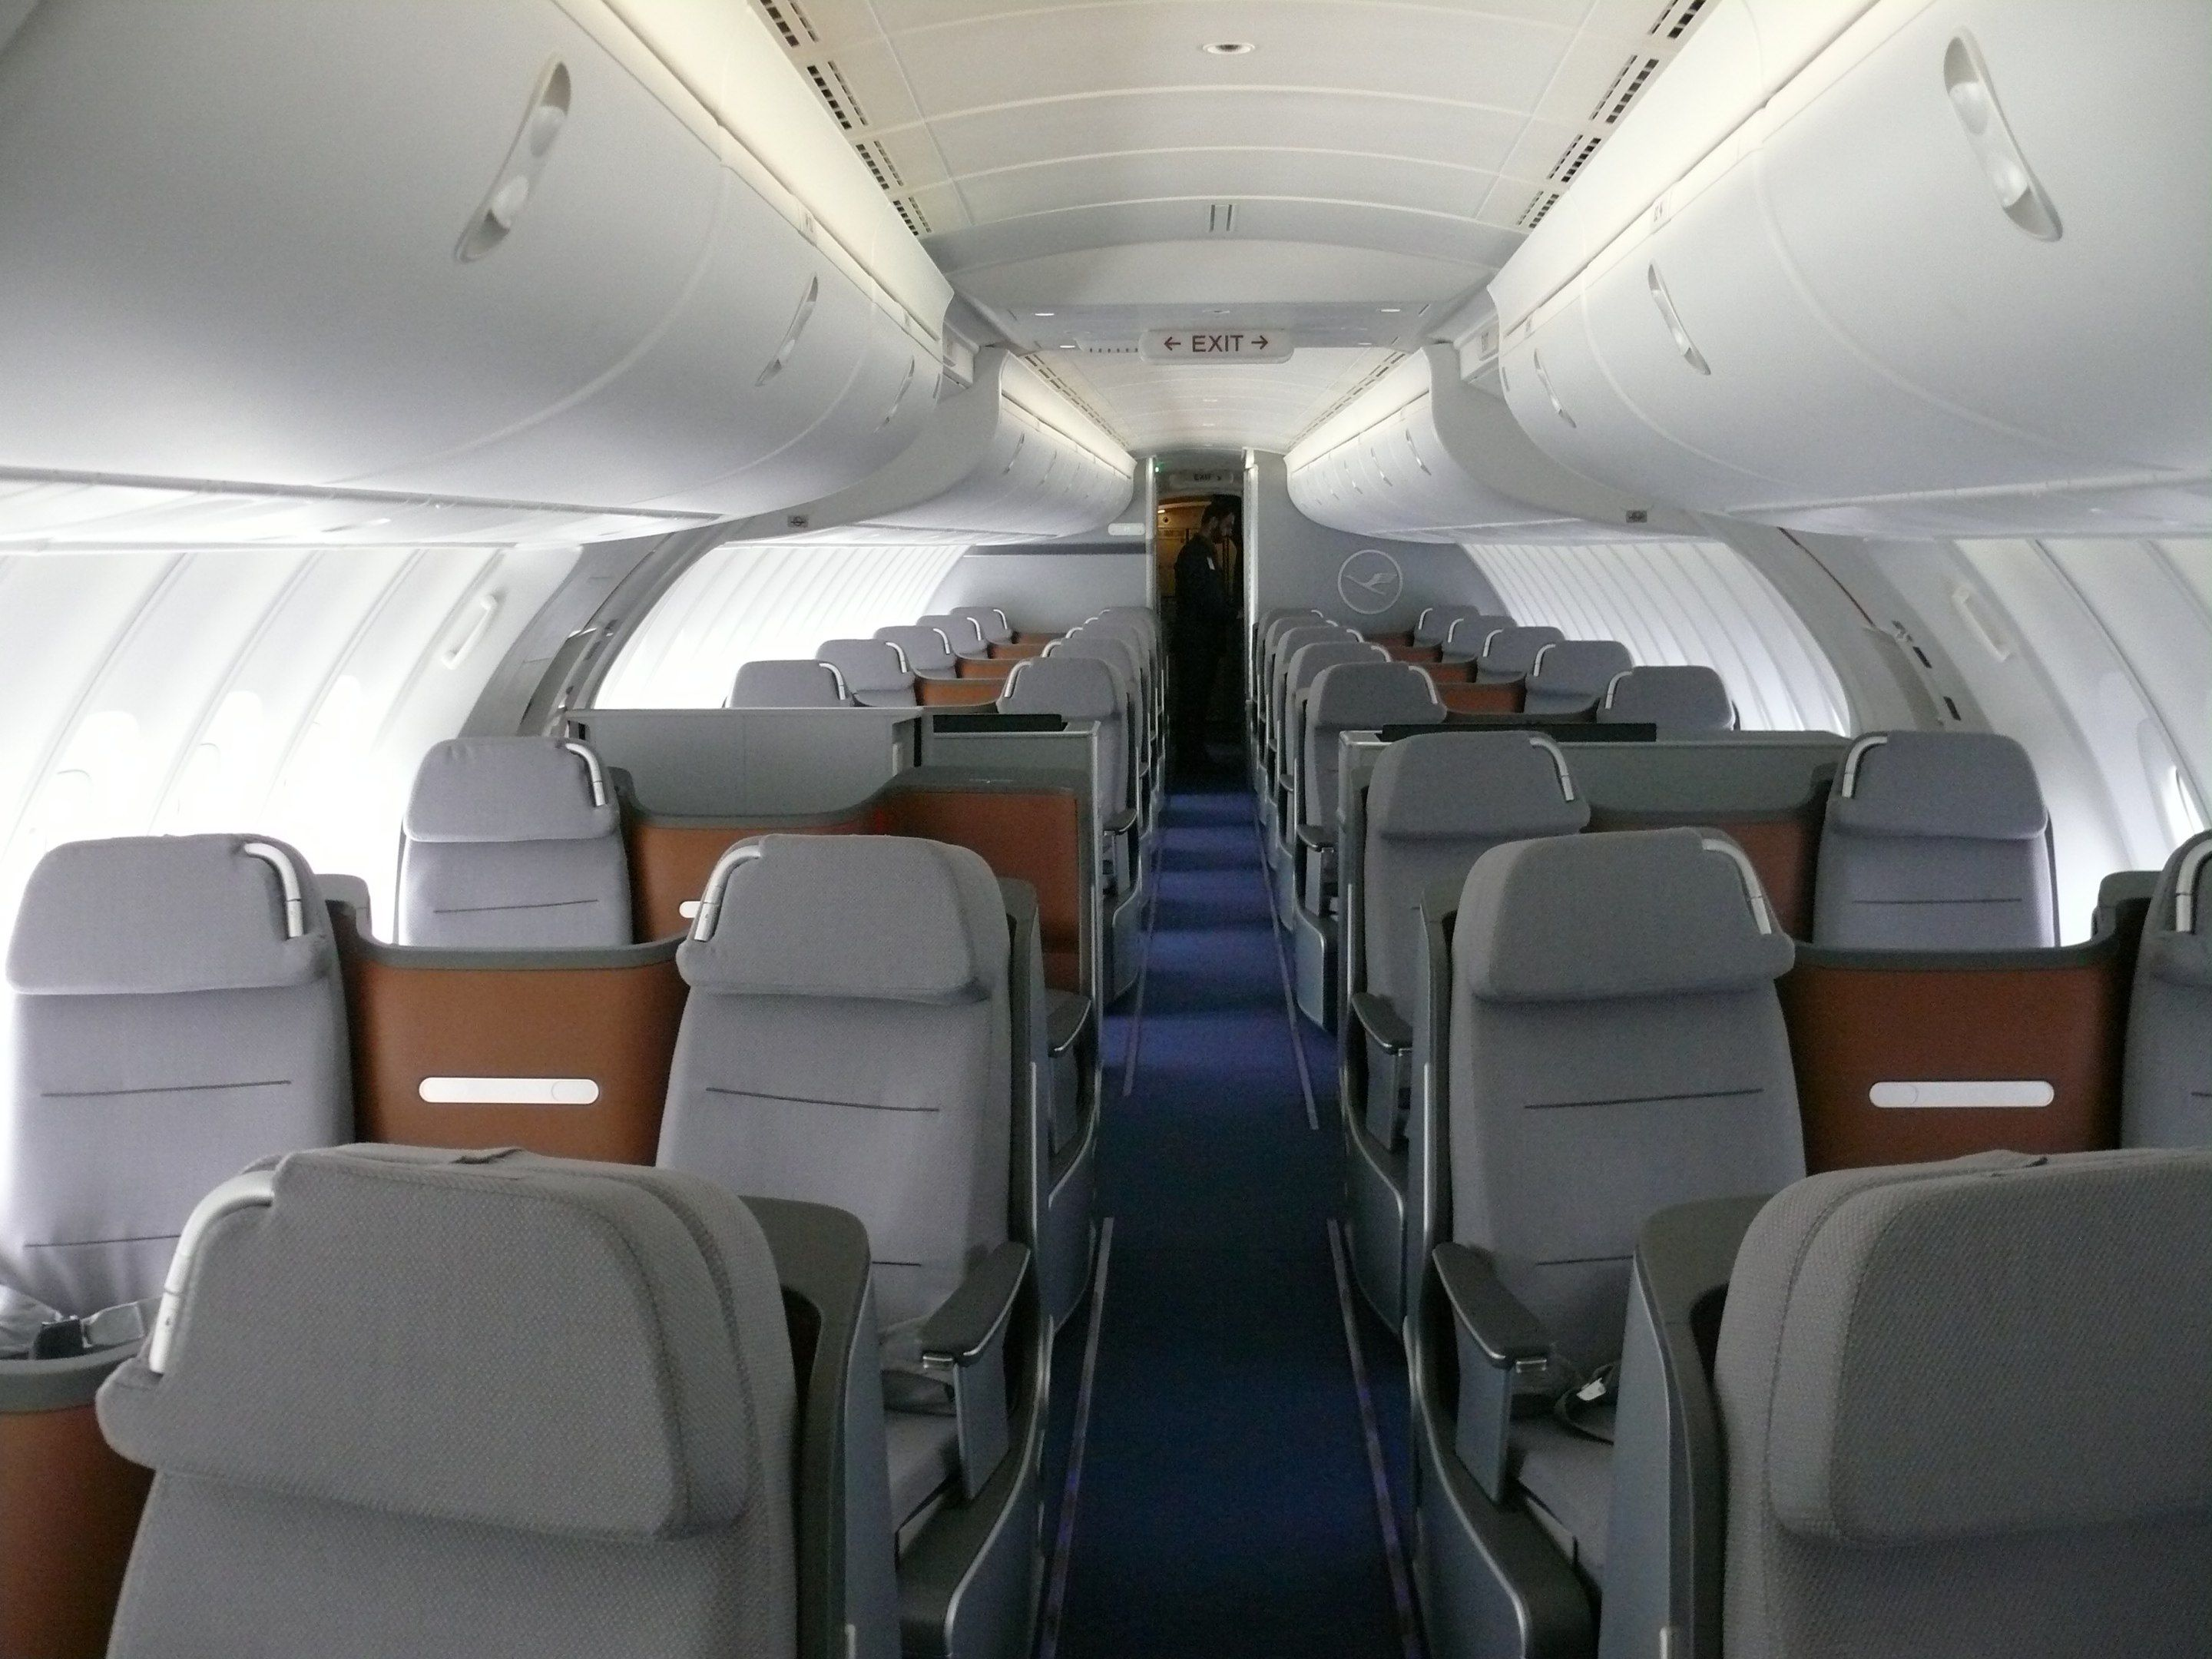 Lufthansa Business Upper Deck Boeing 747 800 Travel